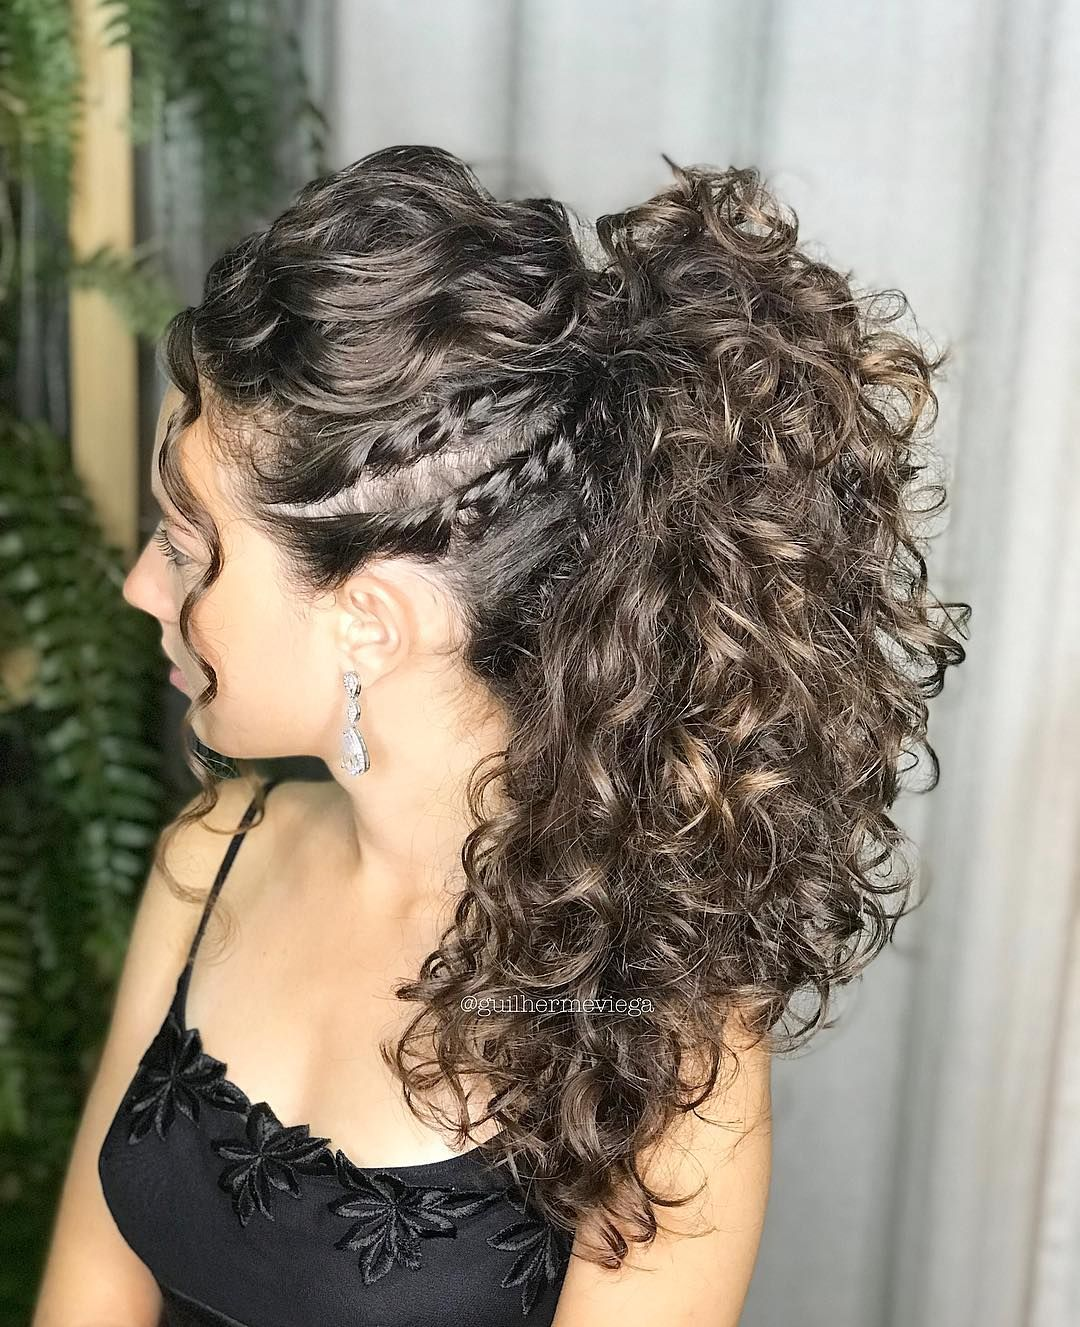 The 10 Best Today on Twitter #curlyhairstyles